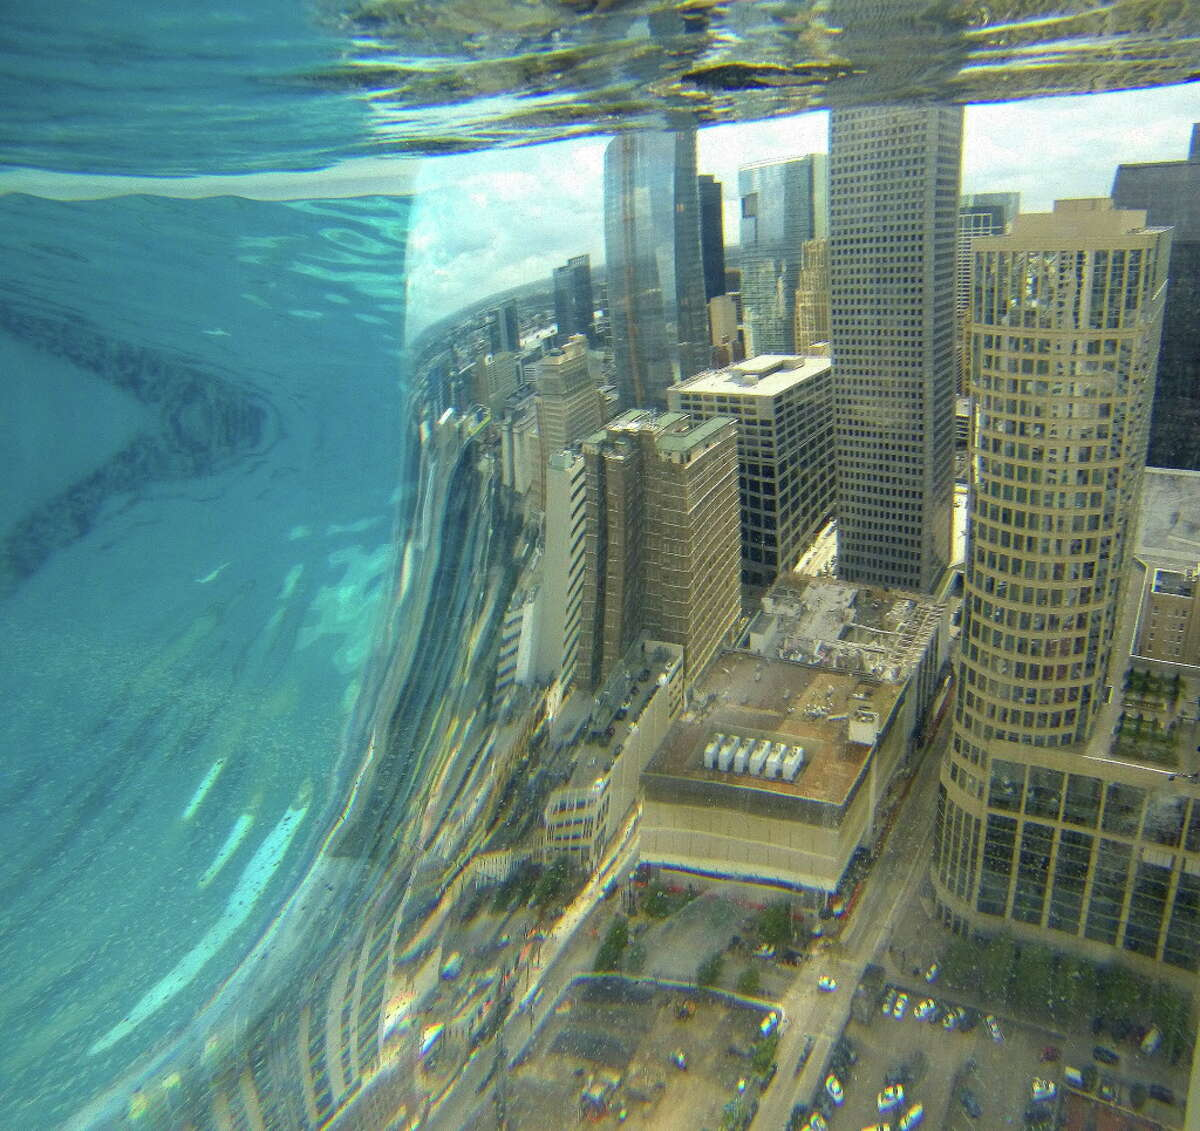 But there's nothing in the world like the skyline view from inside the pool itself.